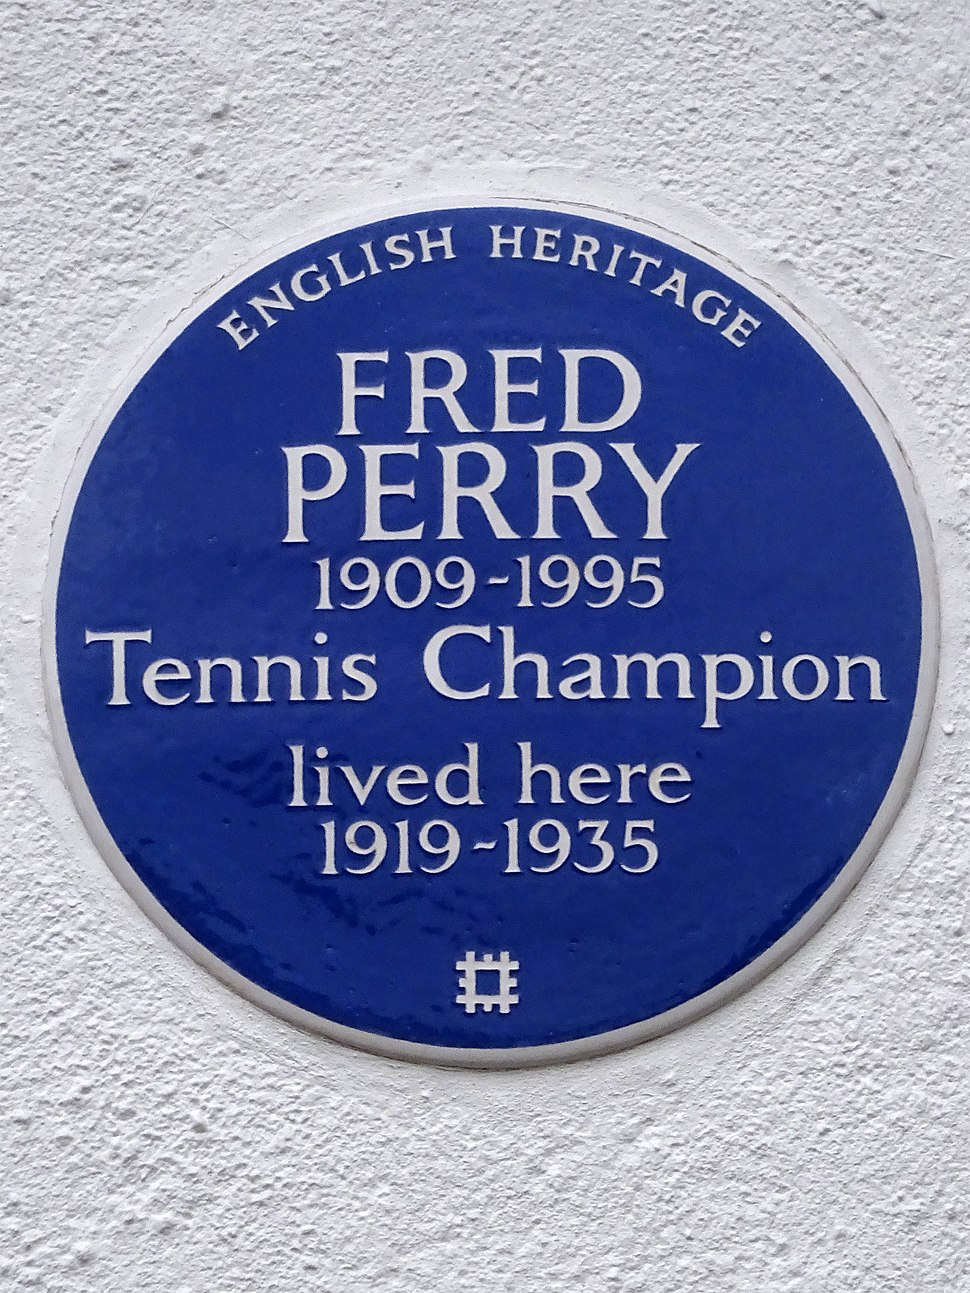 FRED PERRY 1909-1995 Tennis Champion lived here 1919-1935